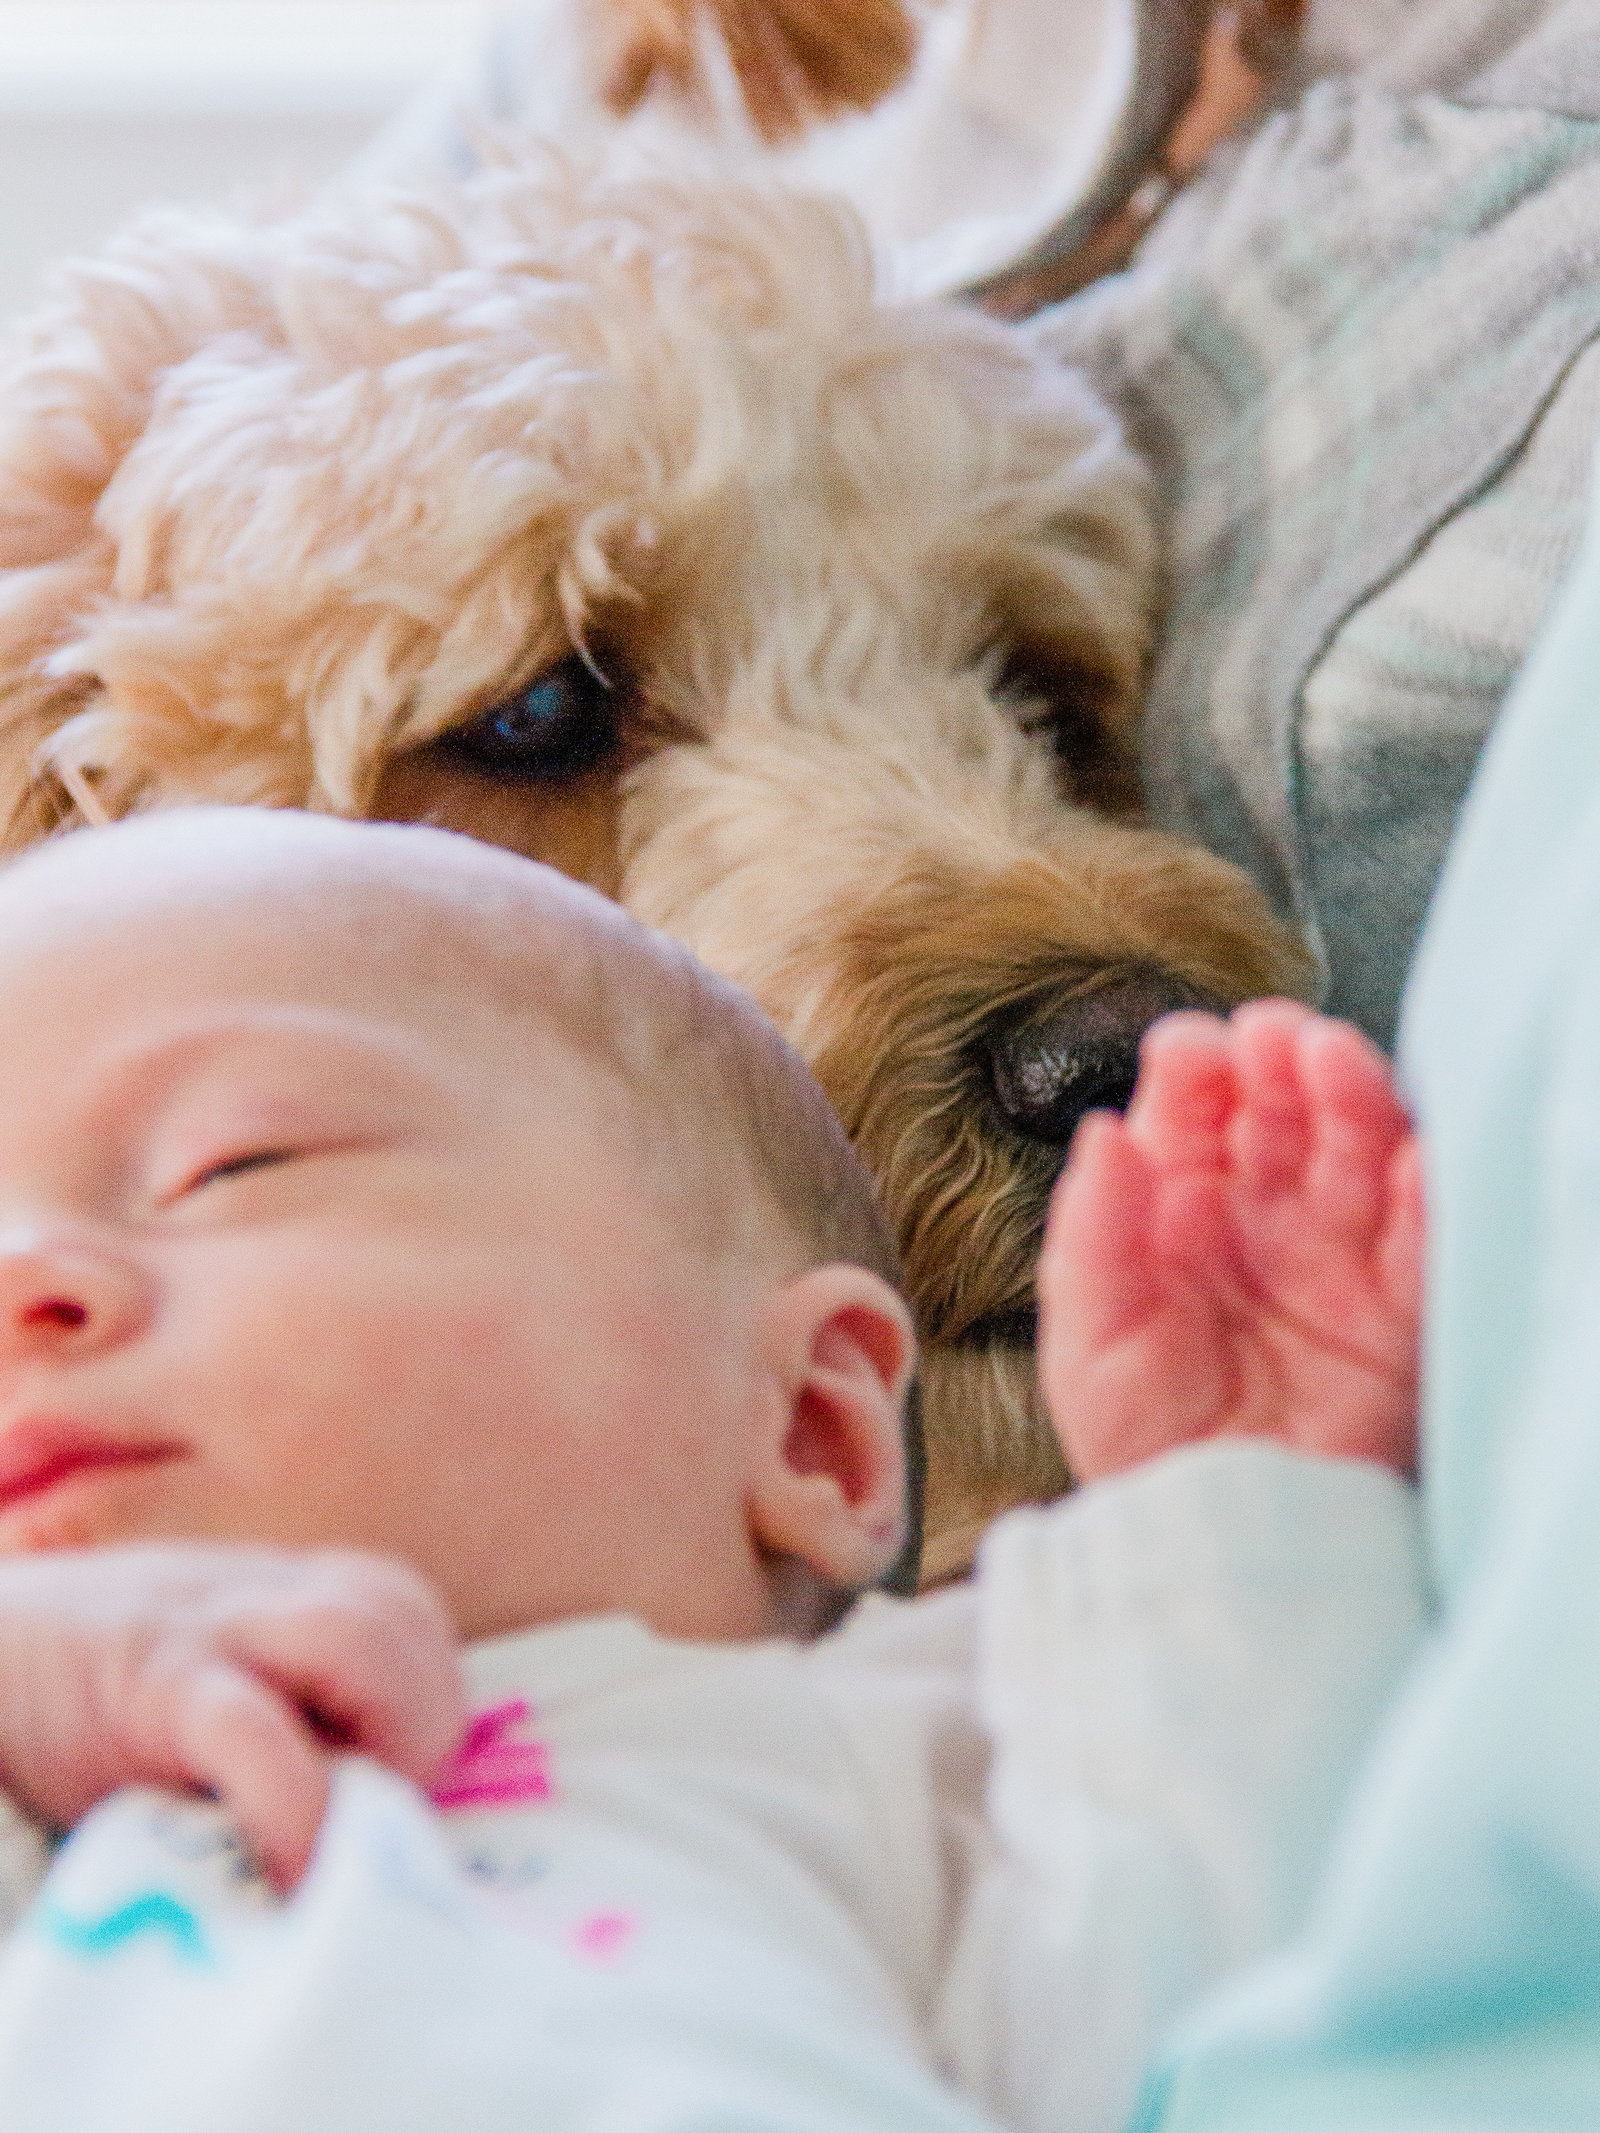 Newborn being held in her mothers arm is being sniffed by her dog